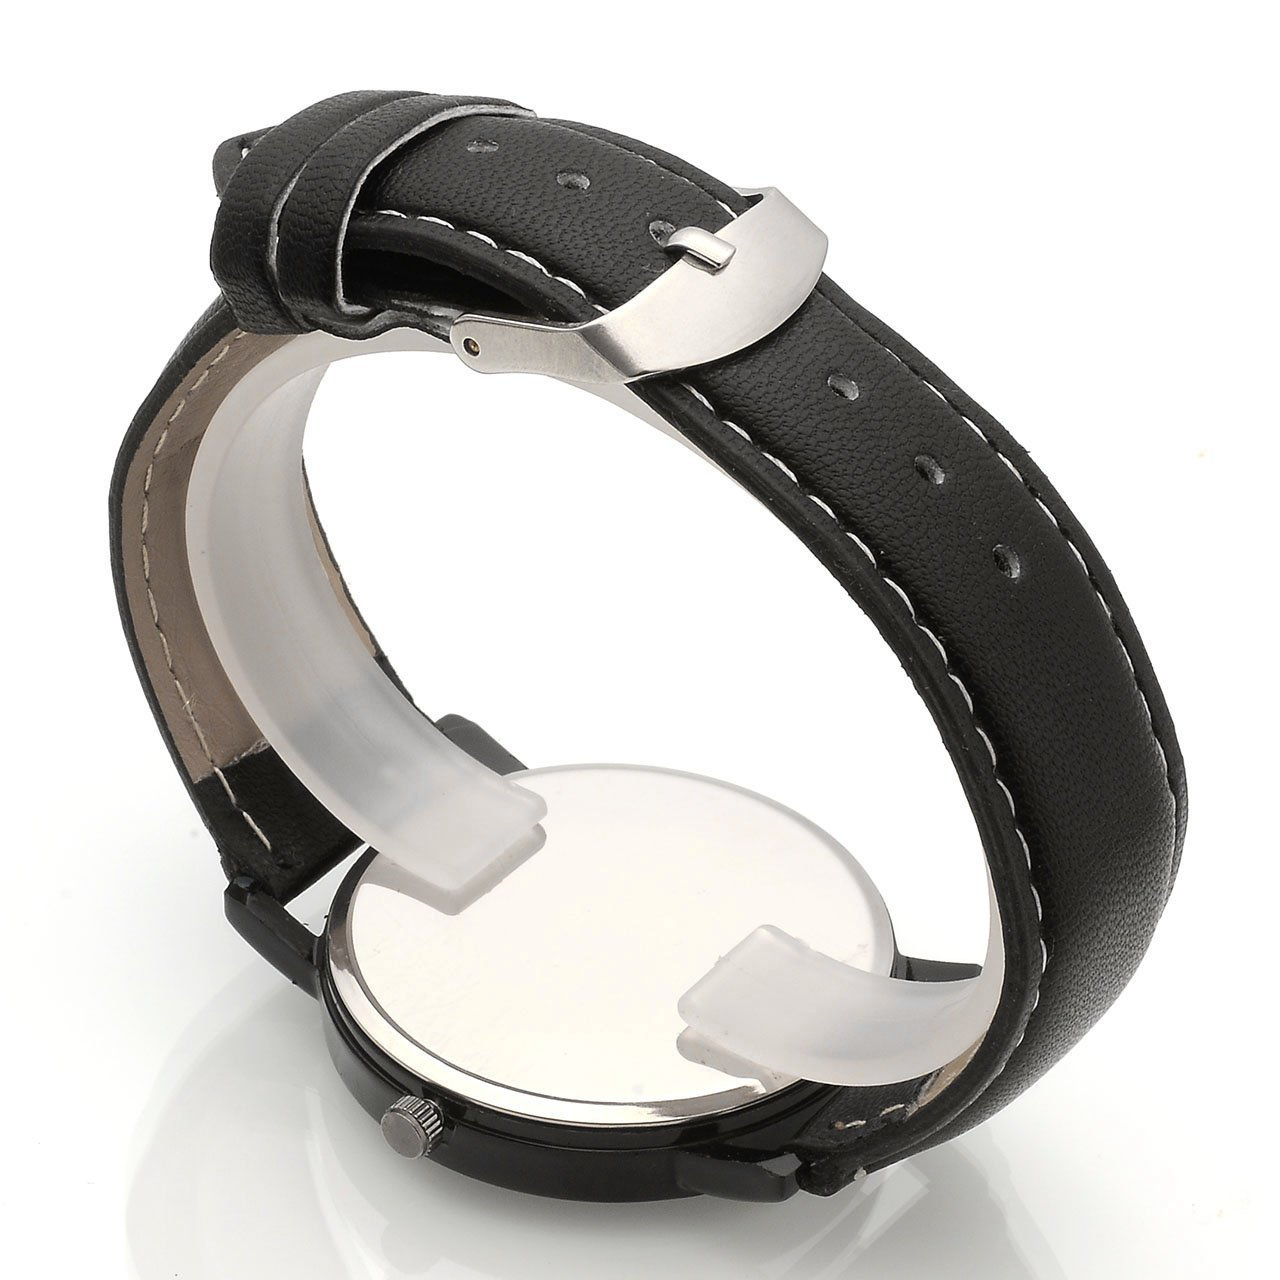 Top Plaza Mens Womens Analog Quartz Wrist Watch Fashion Simple Watch with Black Leather Band Large Face